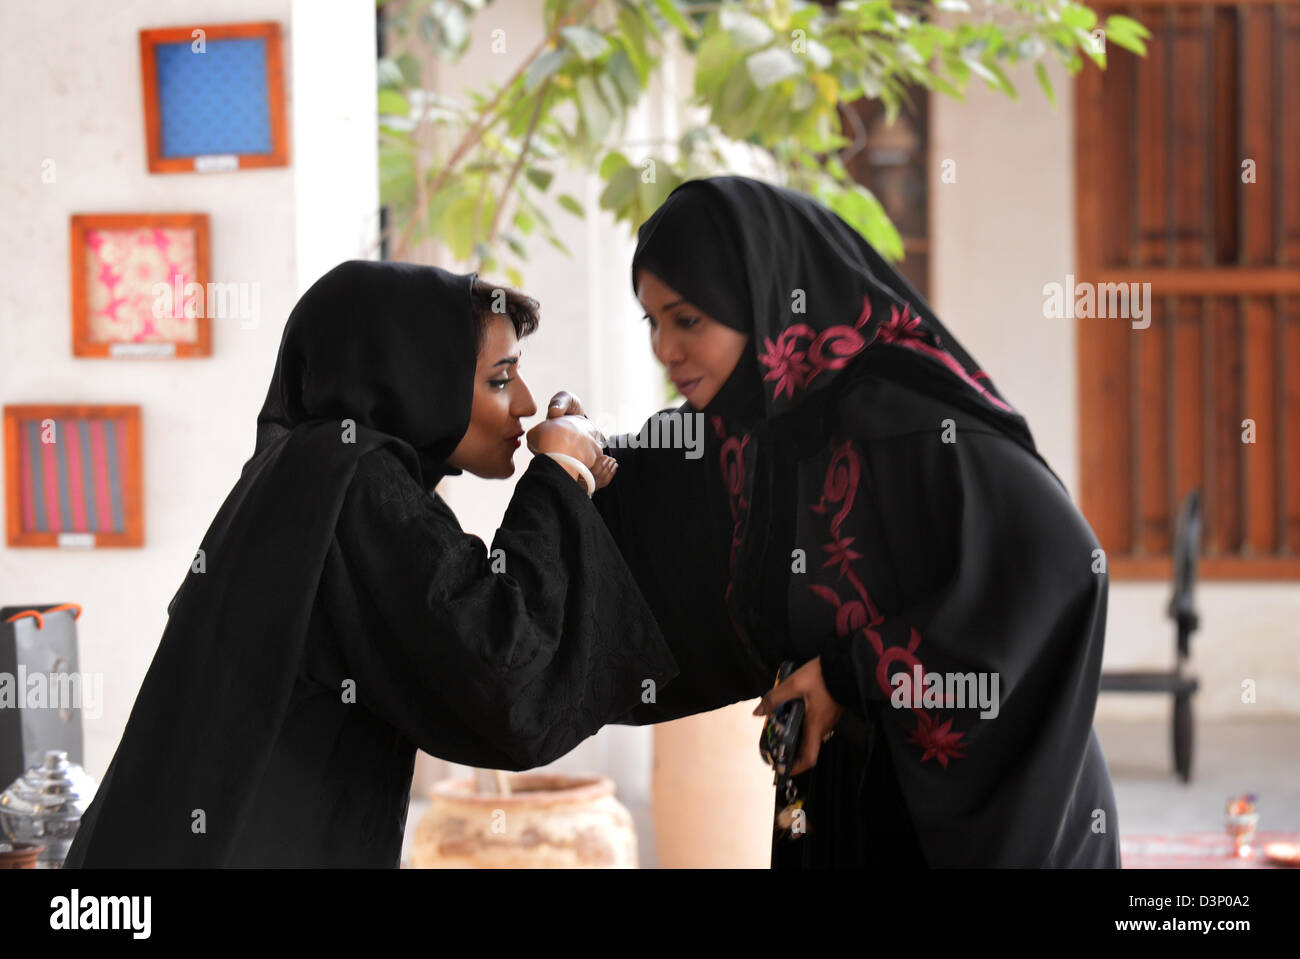 Two Arab Women Greet Other Stock Photos Two Arab Women Greet Other